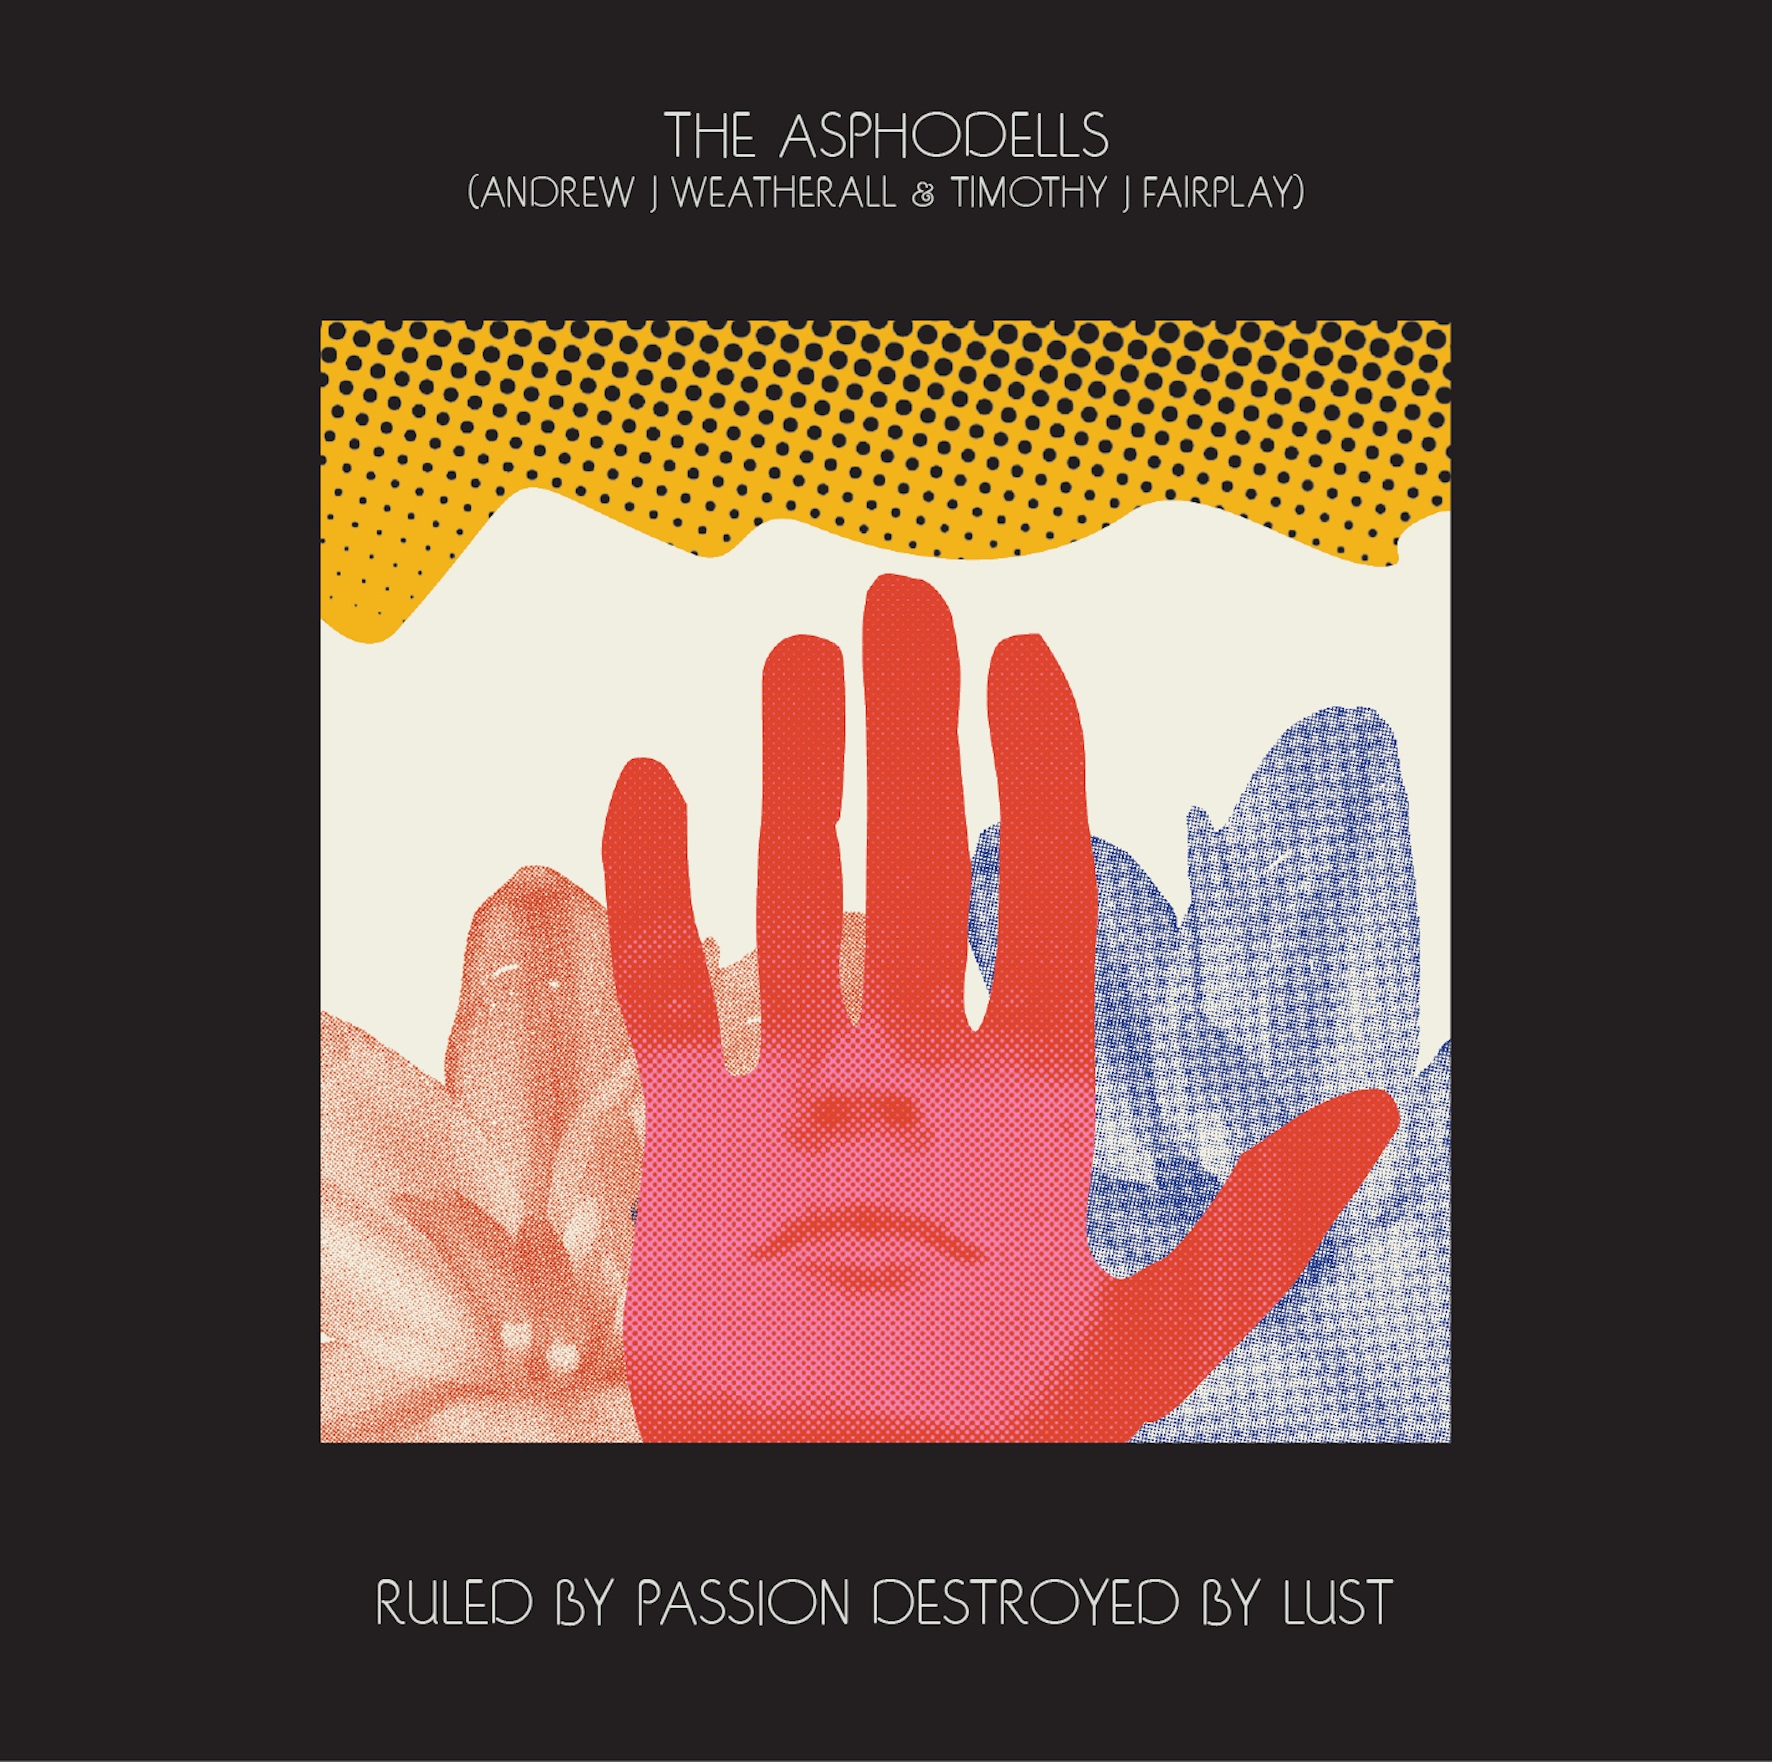 Review, Promo`d, Dr Rob, The Asphodells, Andrew Weatherall, Timothy Fairplay, Rotters Golf Club, Ruled By Passion, Destroyed By Lust, A Love From Outer Space